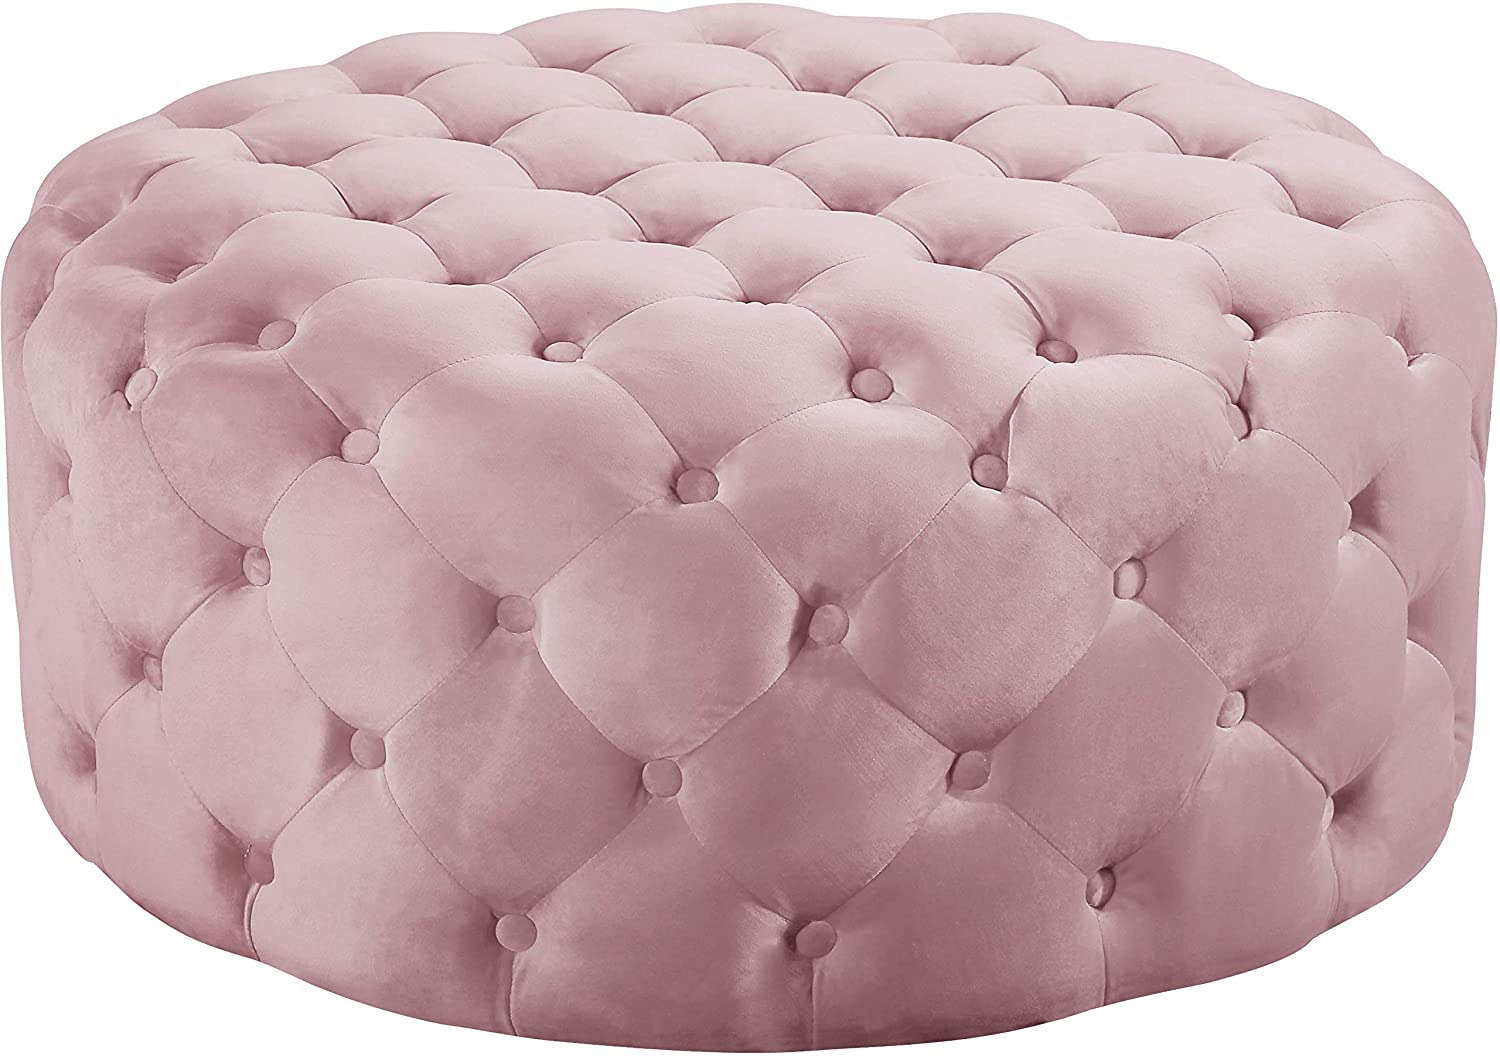 Prime Meridian Furniture 122Pink Addison Collection Modern Contemporary Pink Velvet Upholstered Ottoman Bench With Deep Button Tufting Solid Wood Frame Evergreenethics Interior Chair Design Evergreenethicsorg